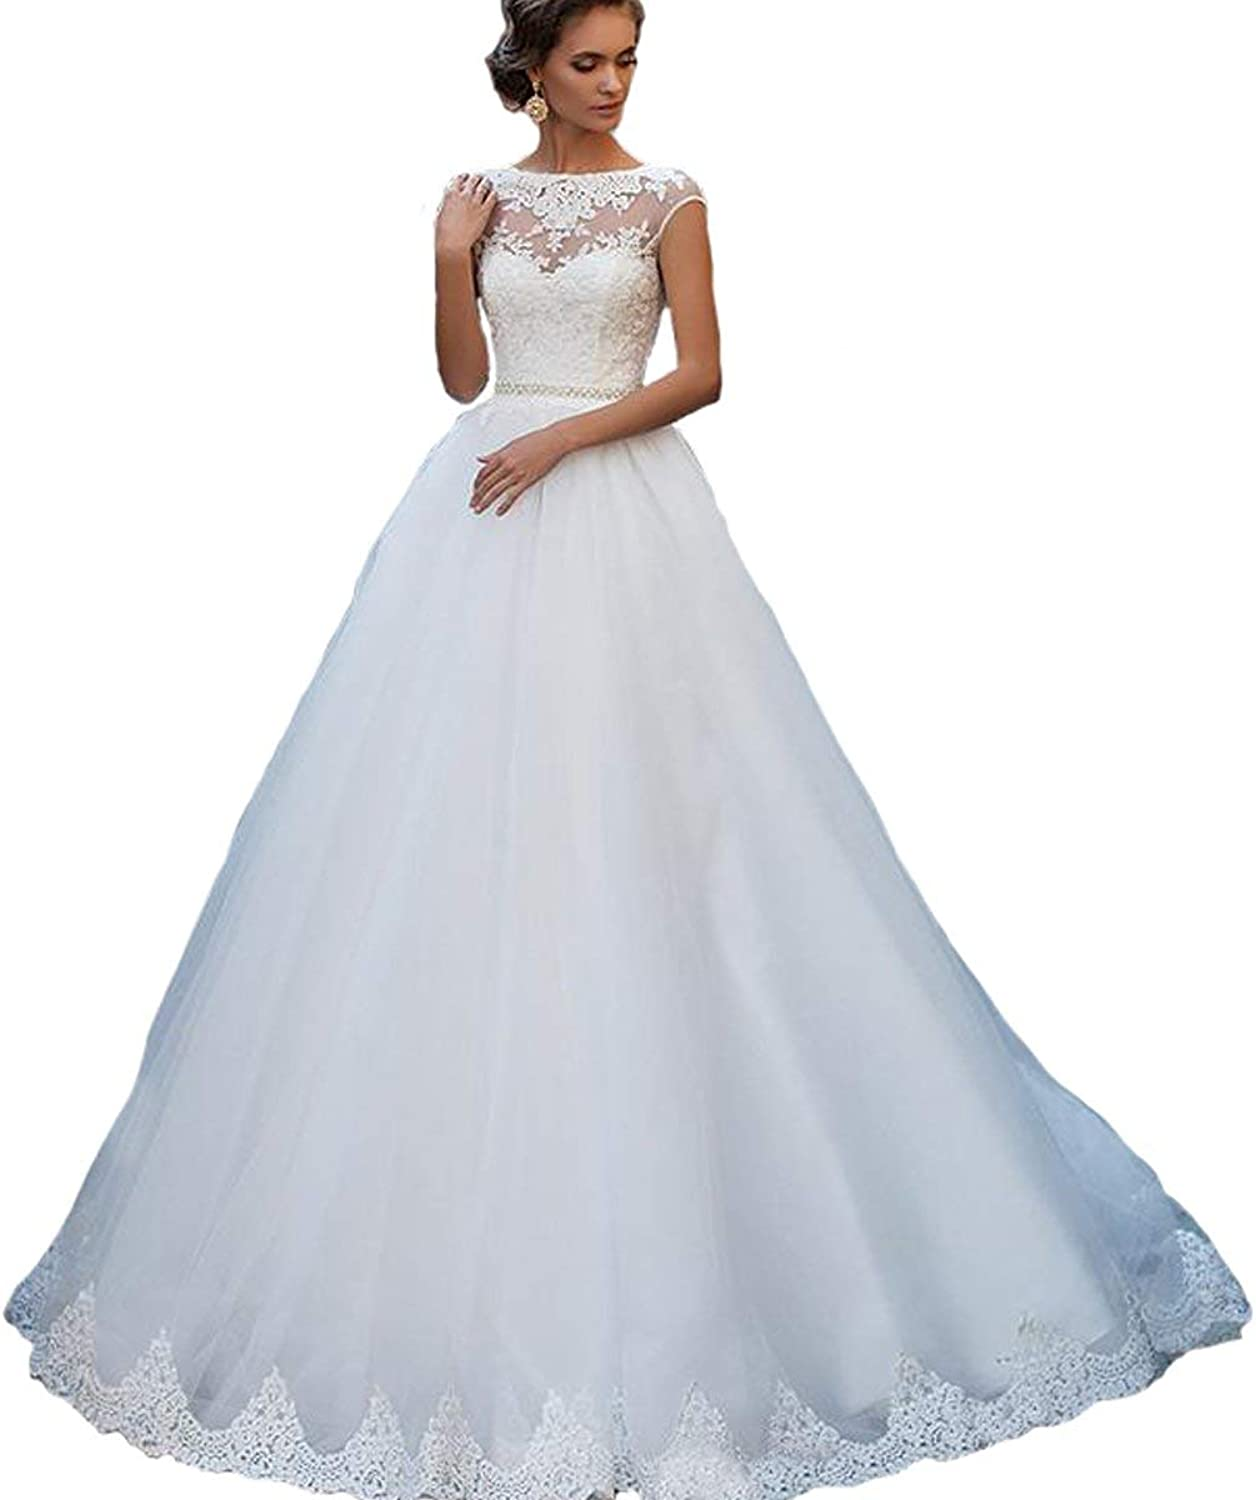 Alexzendra Cap Sleeves Long Women's Wedding Dress Lace Bridal Dress